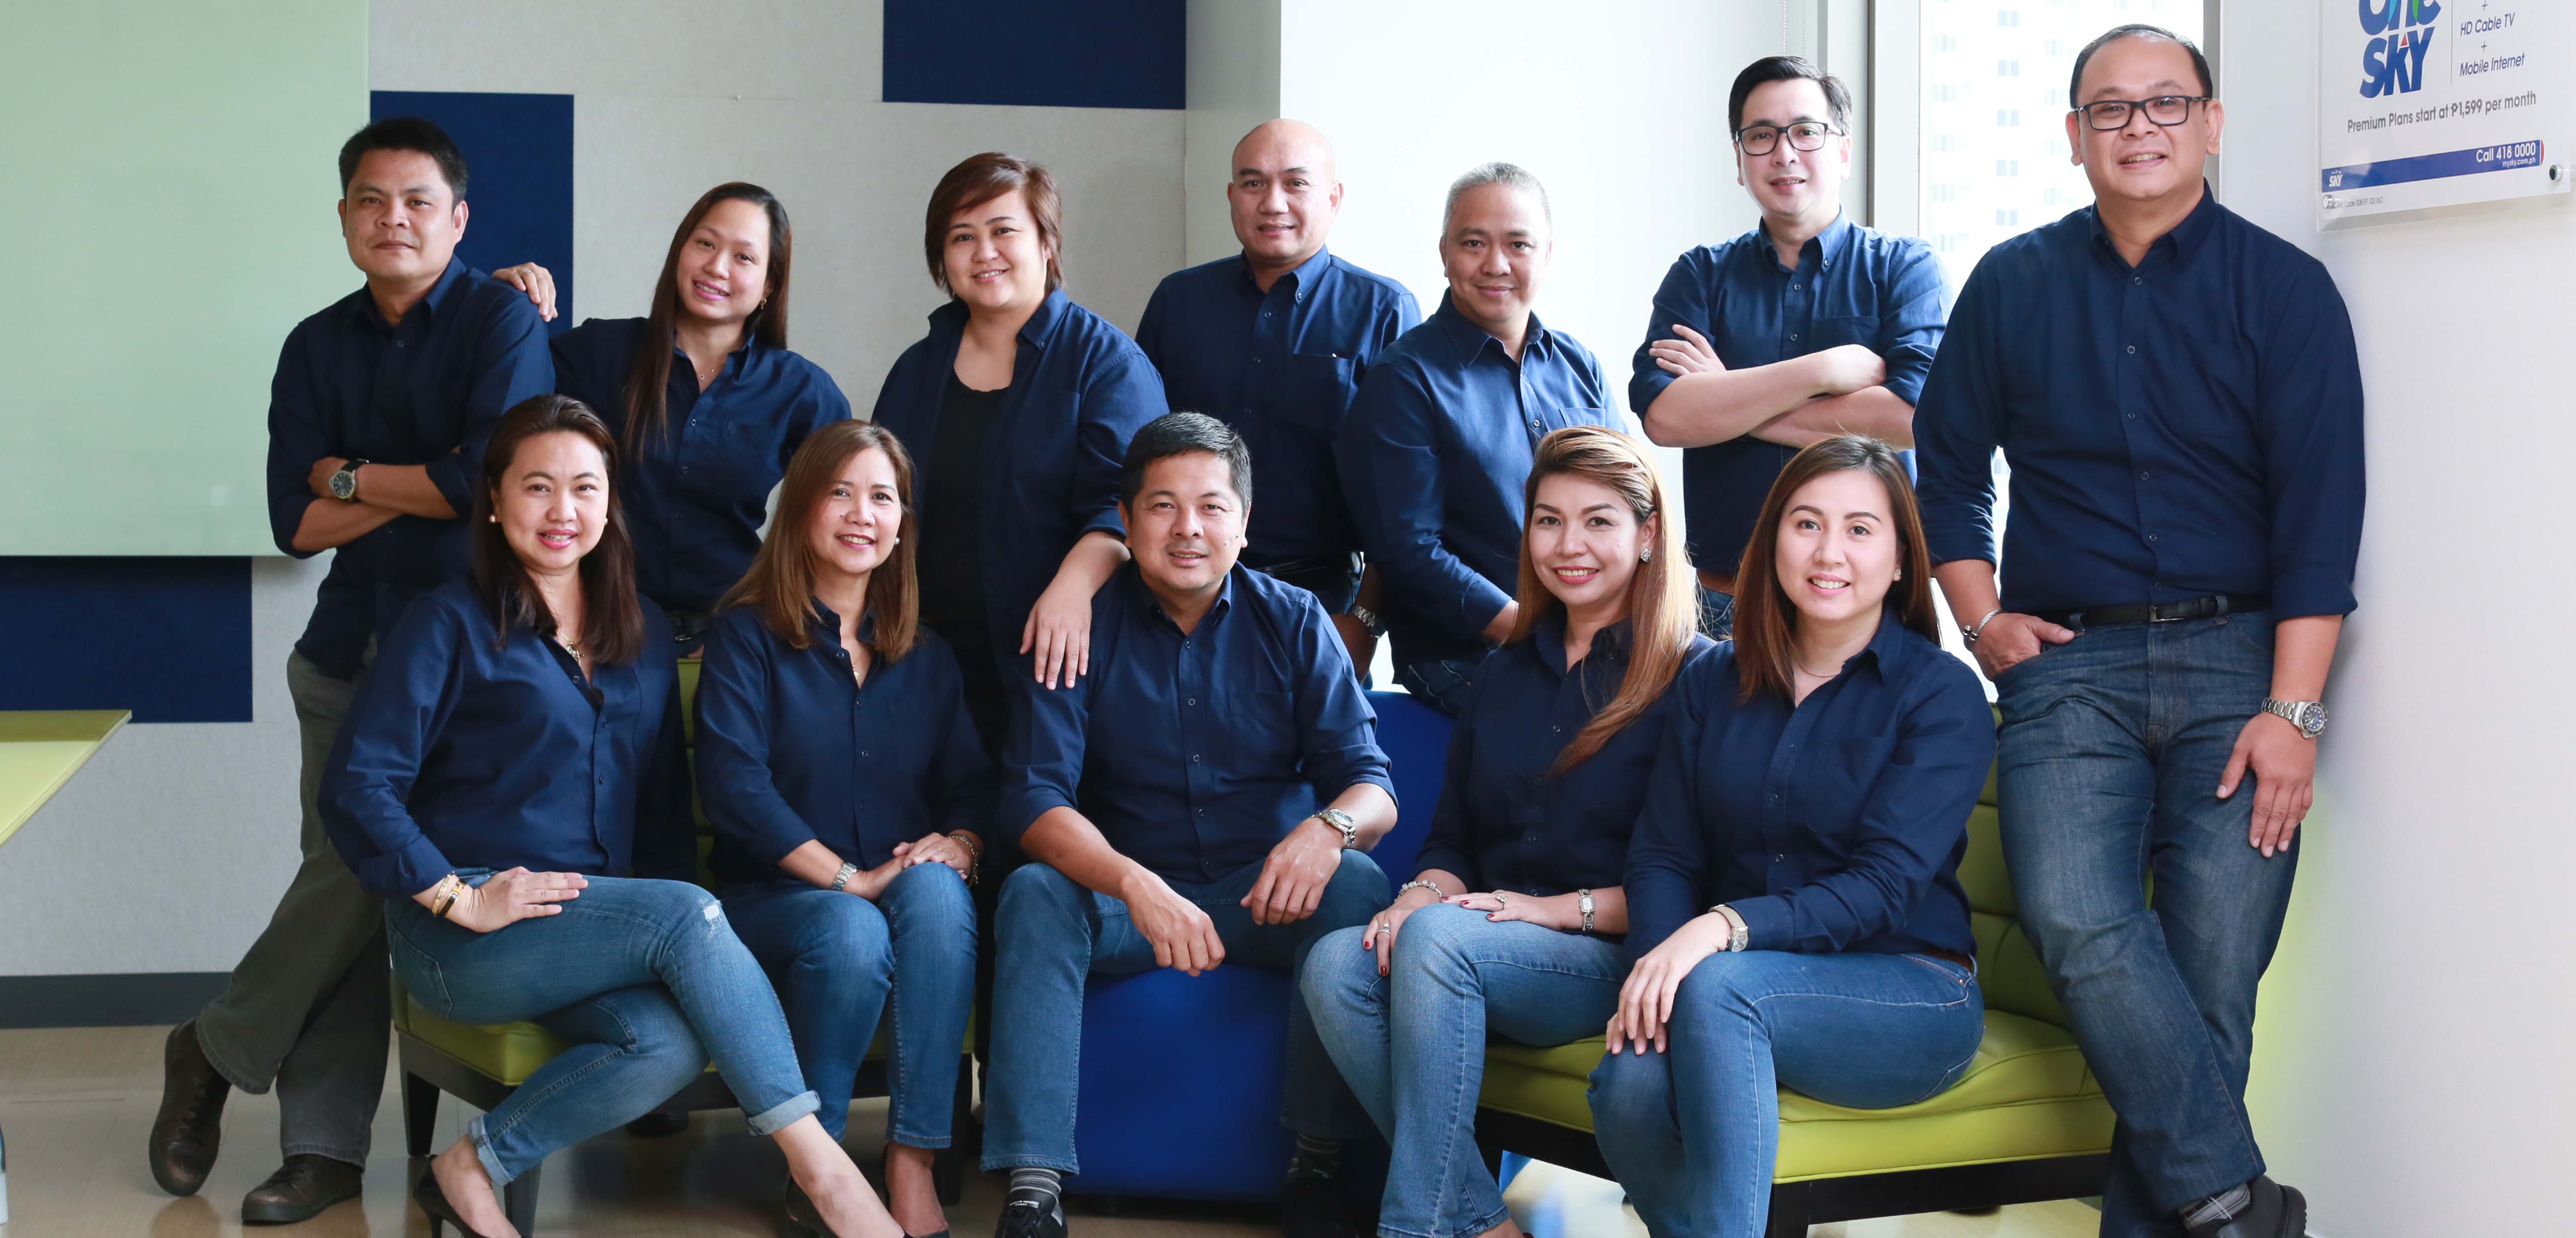 The SKYBIZ Enterprise team Clockwise from top left: Jowell Peralta (Sales head), Lea Datu (Sales head), Trixie Gabriel (Marketing head), Dennis Marquez (Sales head), Jamir Betita (CE head), Ronnel Dumandan (Sales head), Dicky Liwanag (BU head), Jill Baluyot (SOG head), Che Rodriguez  (Sales head), Jon Arayata (Division head), Angela Cabrera (Sales head) and Jackie Soriano (Sales head)